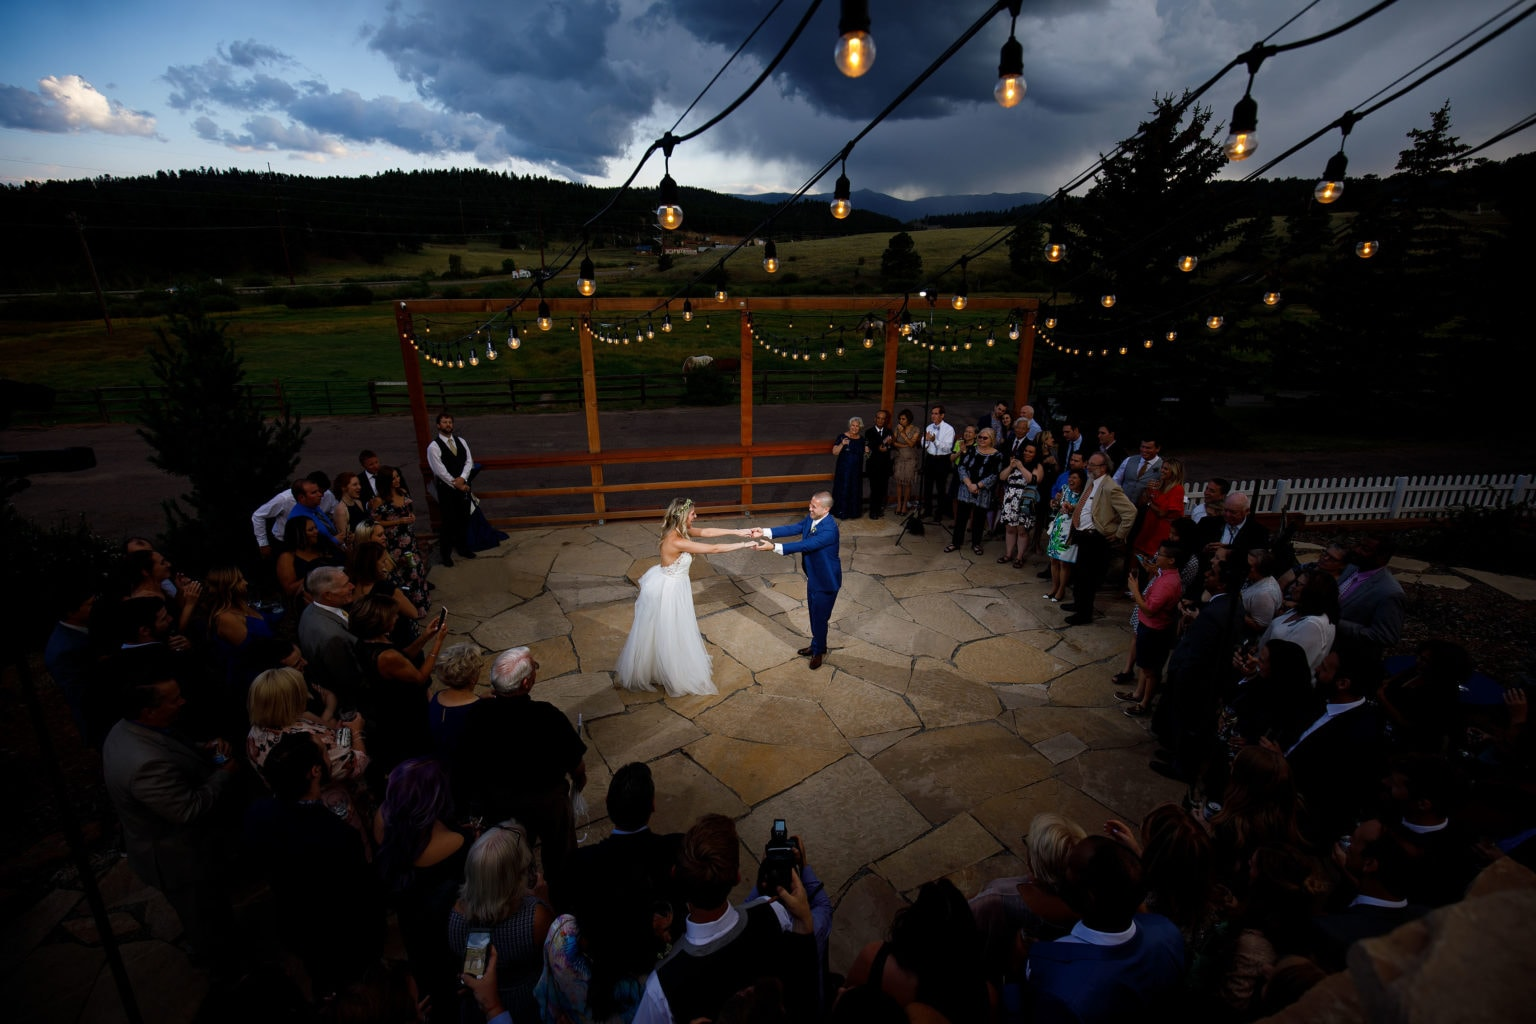 The newlyweds dance on the patio under market lights during their summer barn wedding at Deer Creek Valley Ranch